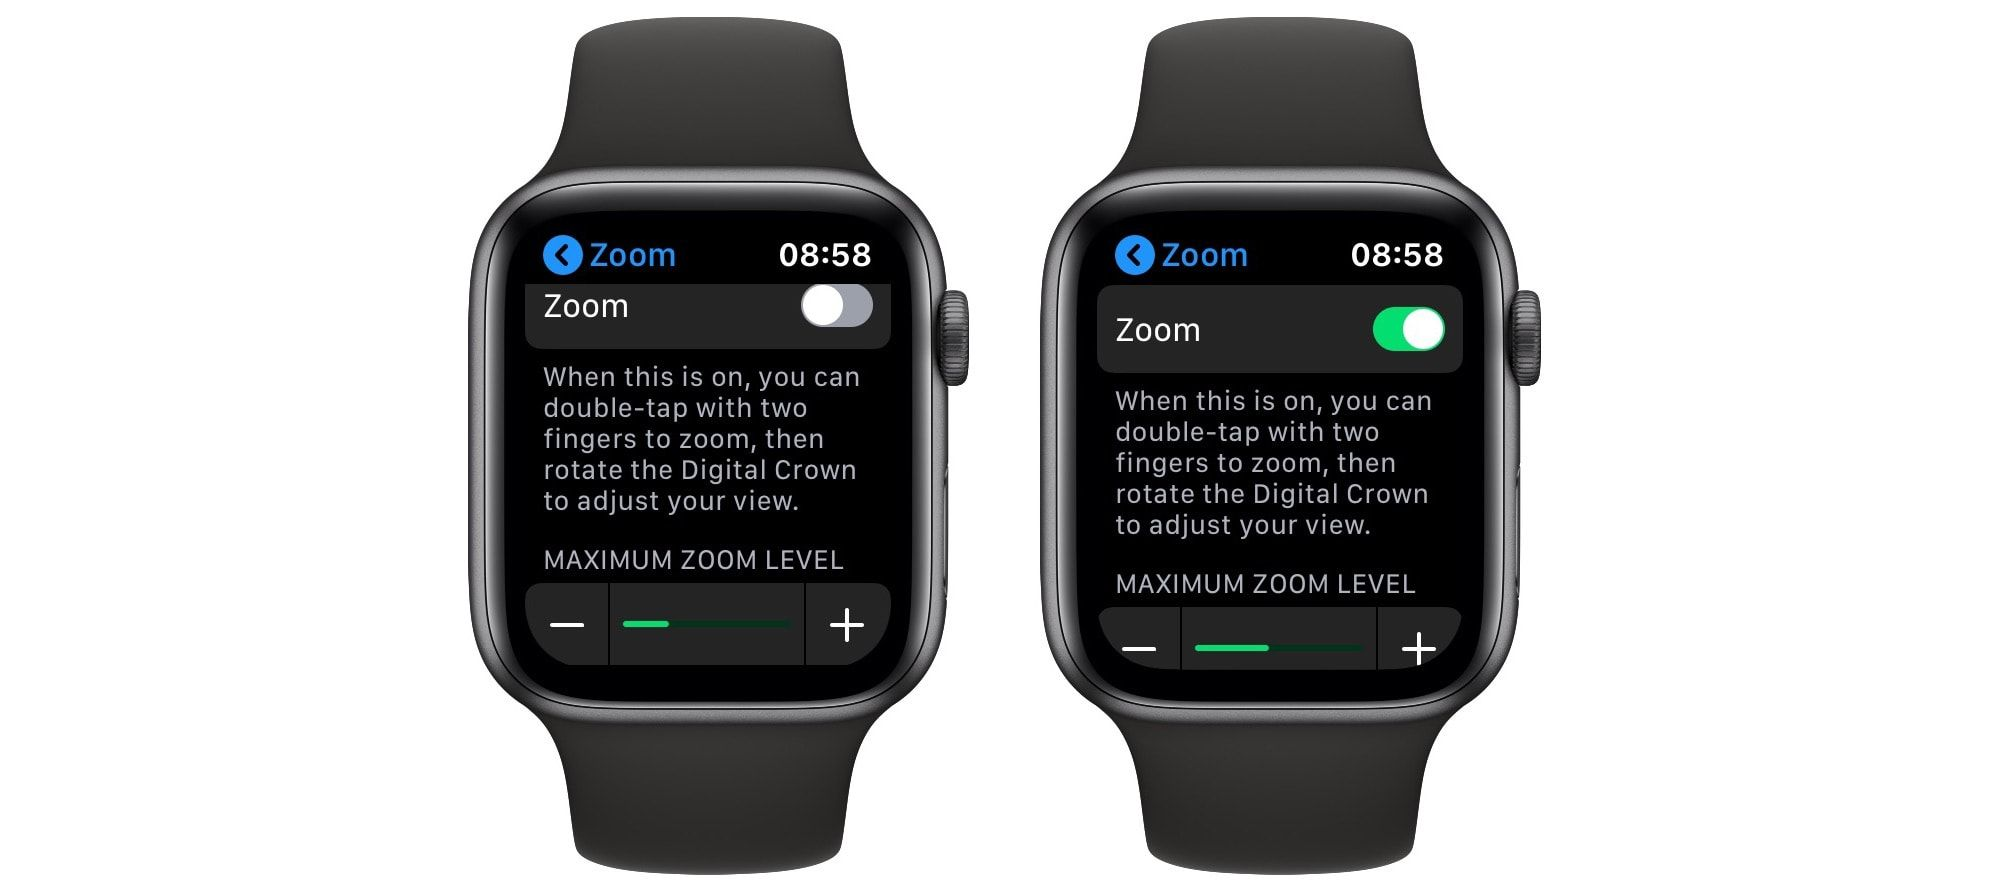 Apple Watch Zoom How to make Apple Watch easier to see